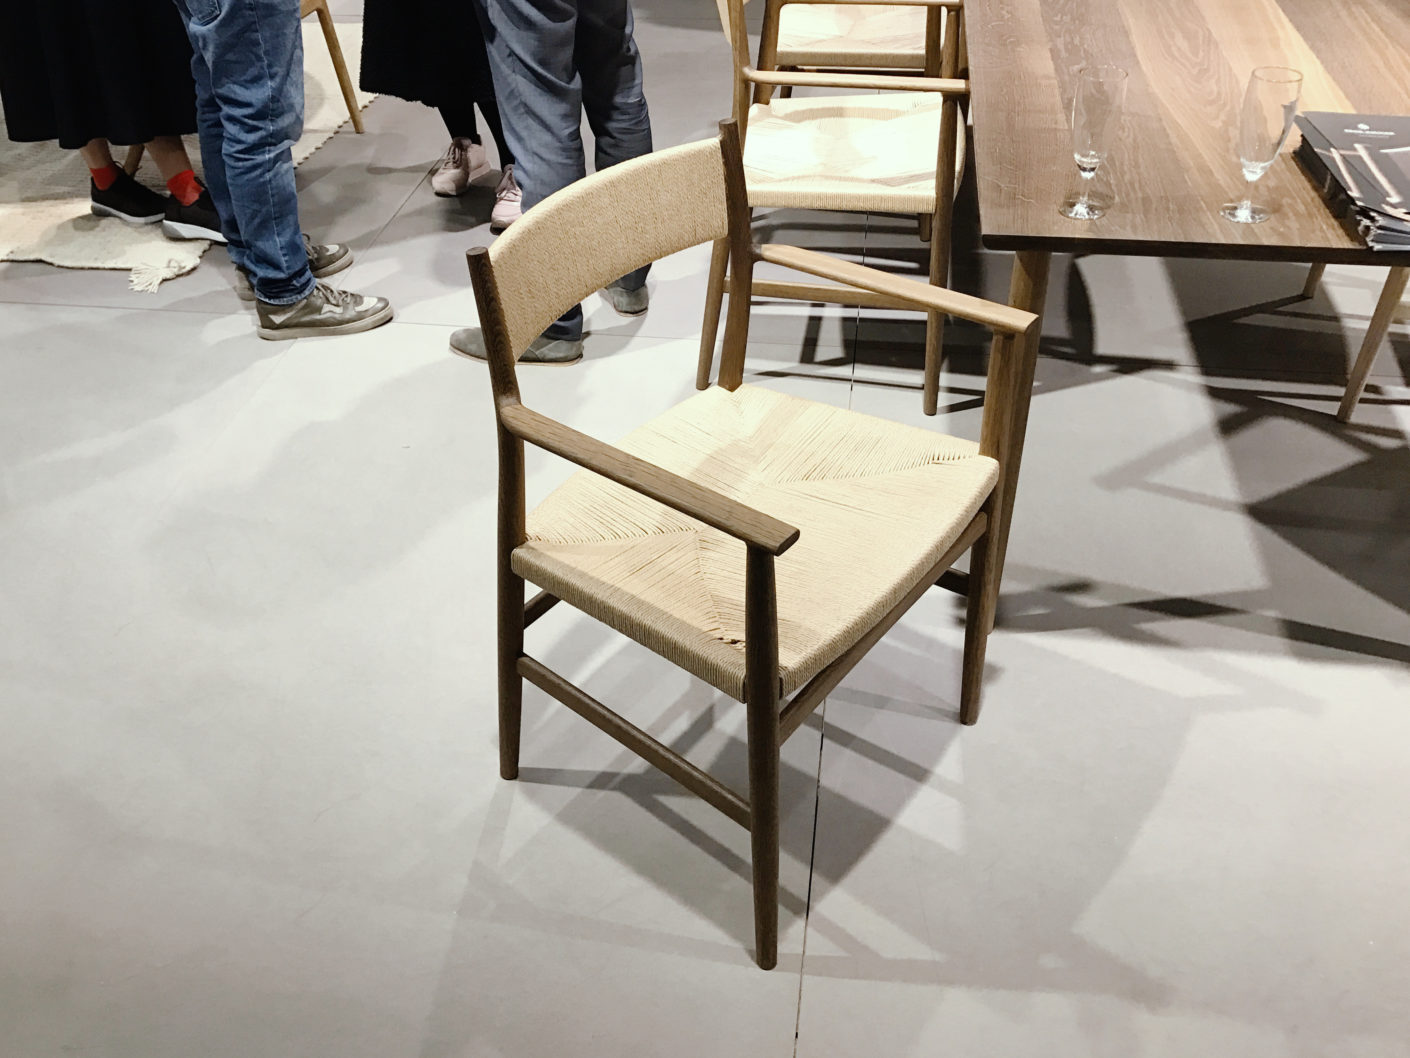 Stockholm, Furniture and Light Fair 2018, Brdr. Krüger, Arv, Stylepark